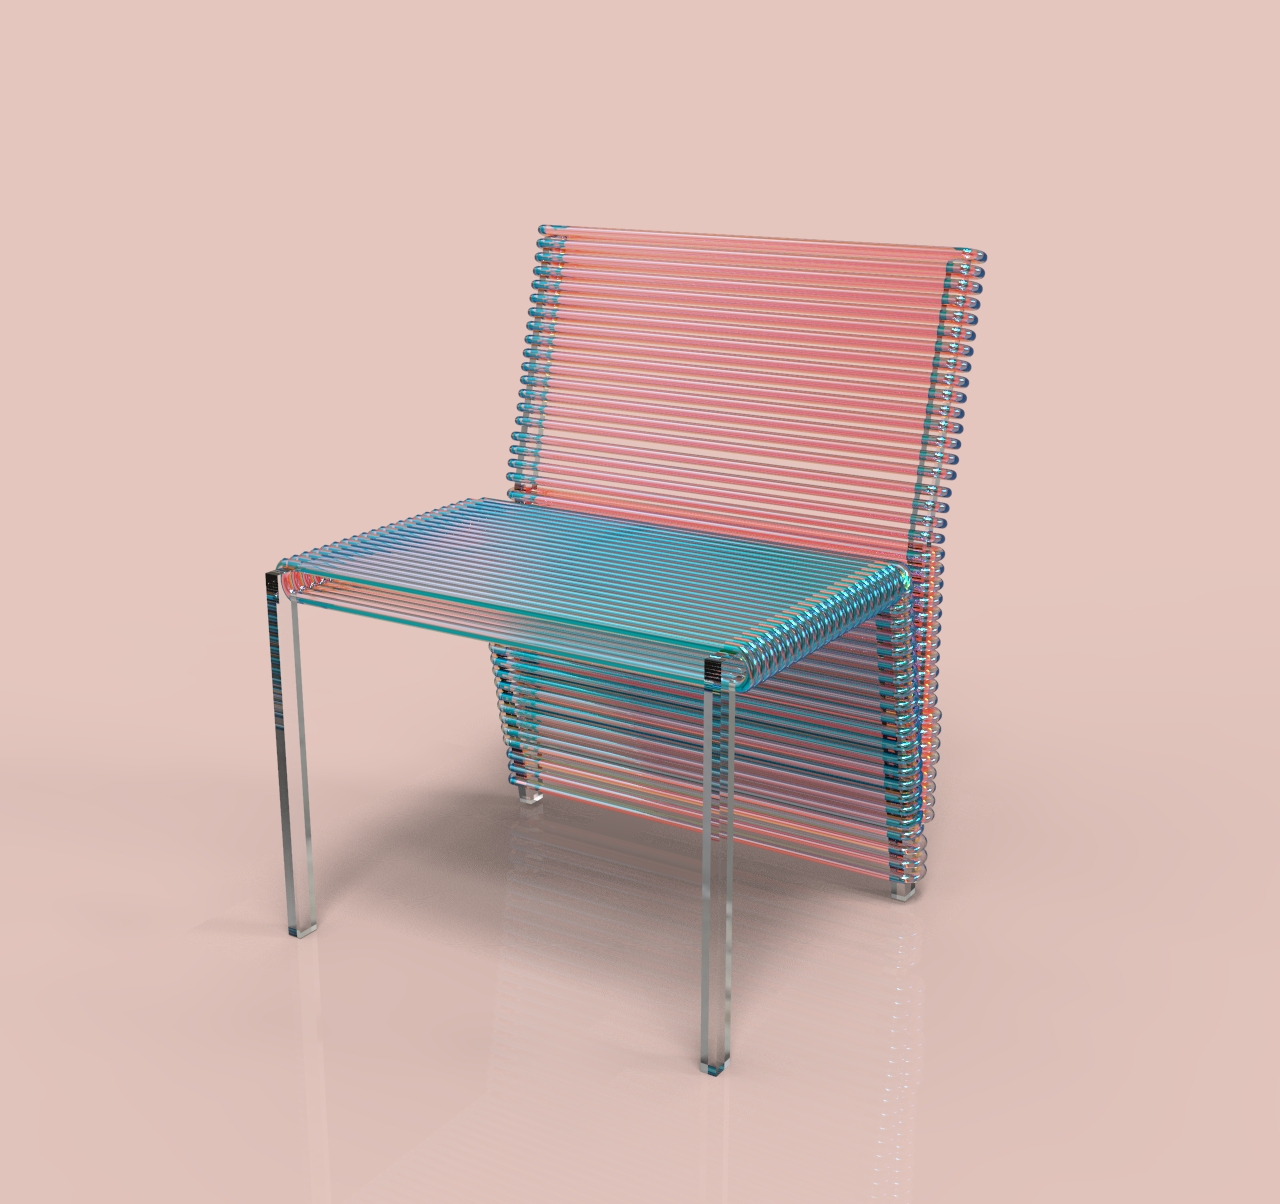 chair file.6.jpg